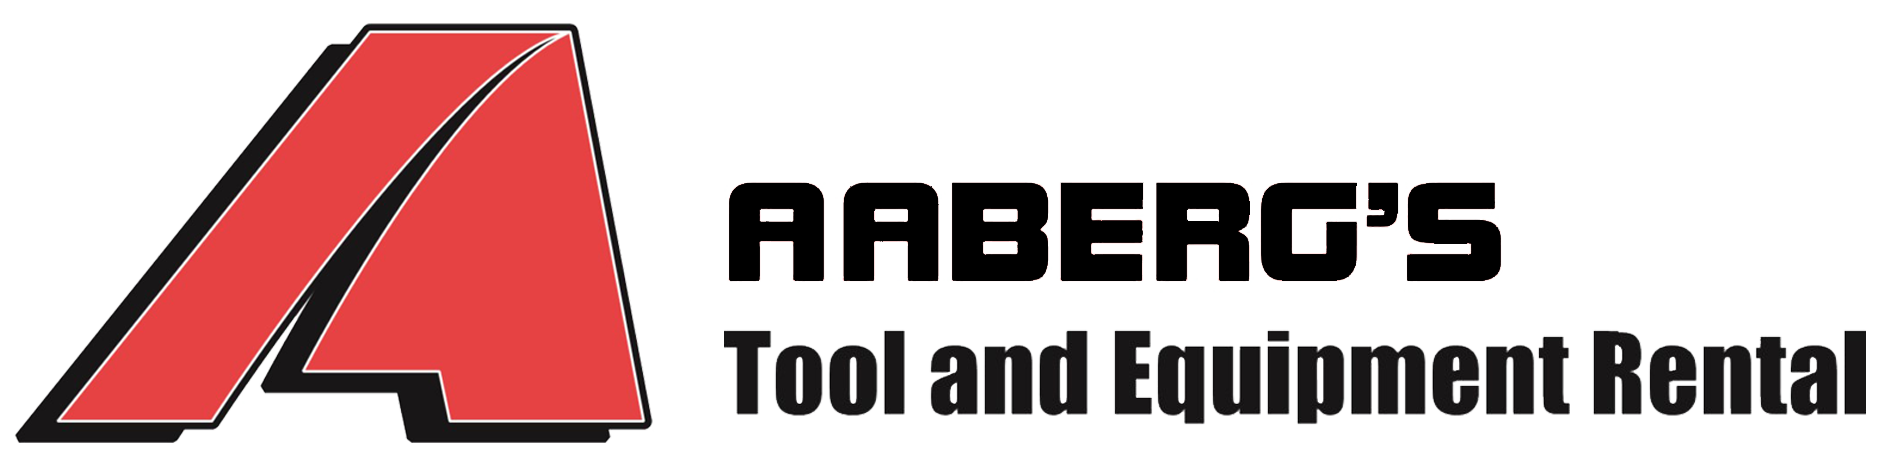 Aabergs Tool and Equipment Rental - Tacoma WA, Seattle, and Puget Sound